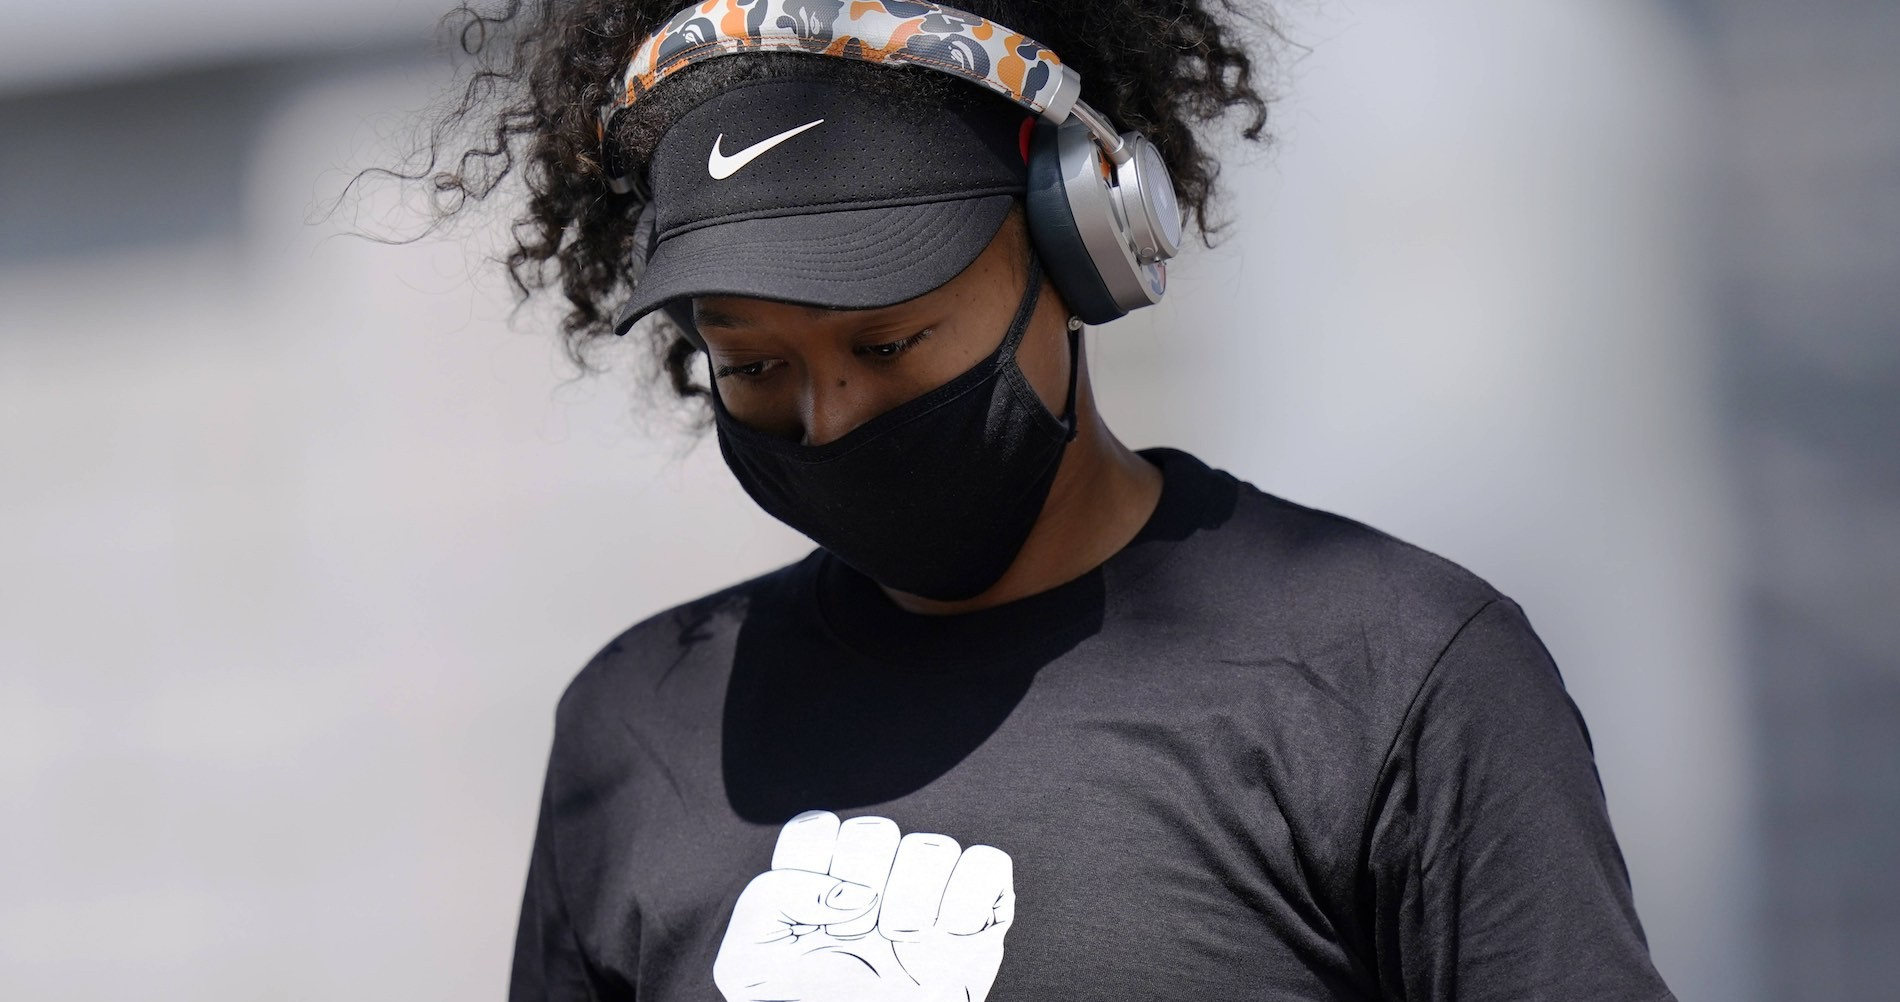 Naomi Osaka during the Western and Southern Open 2020, with a Black Lives Matter shirt